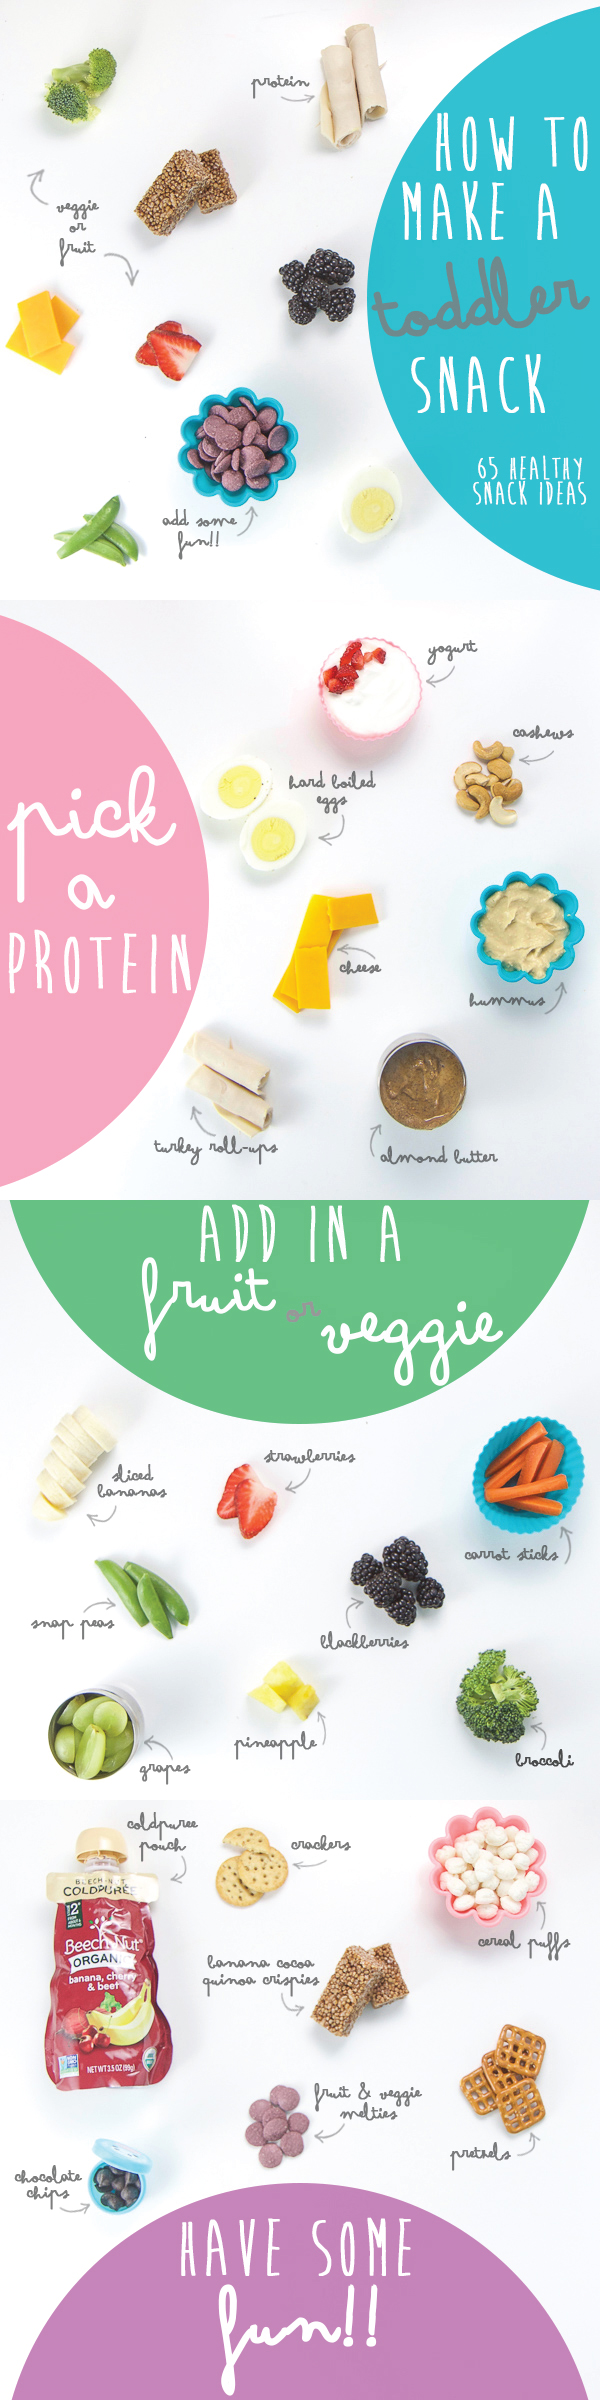 How to Make a Toddler Snack (65 Healthy Snack Ideas)